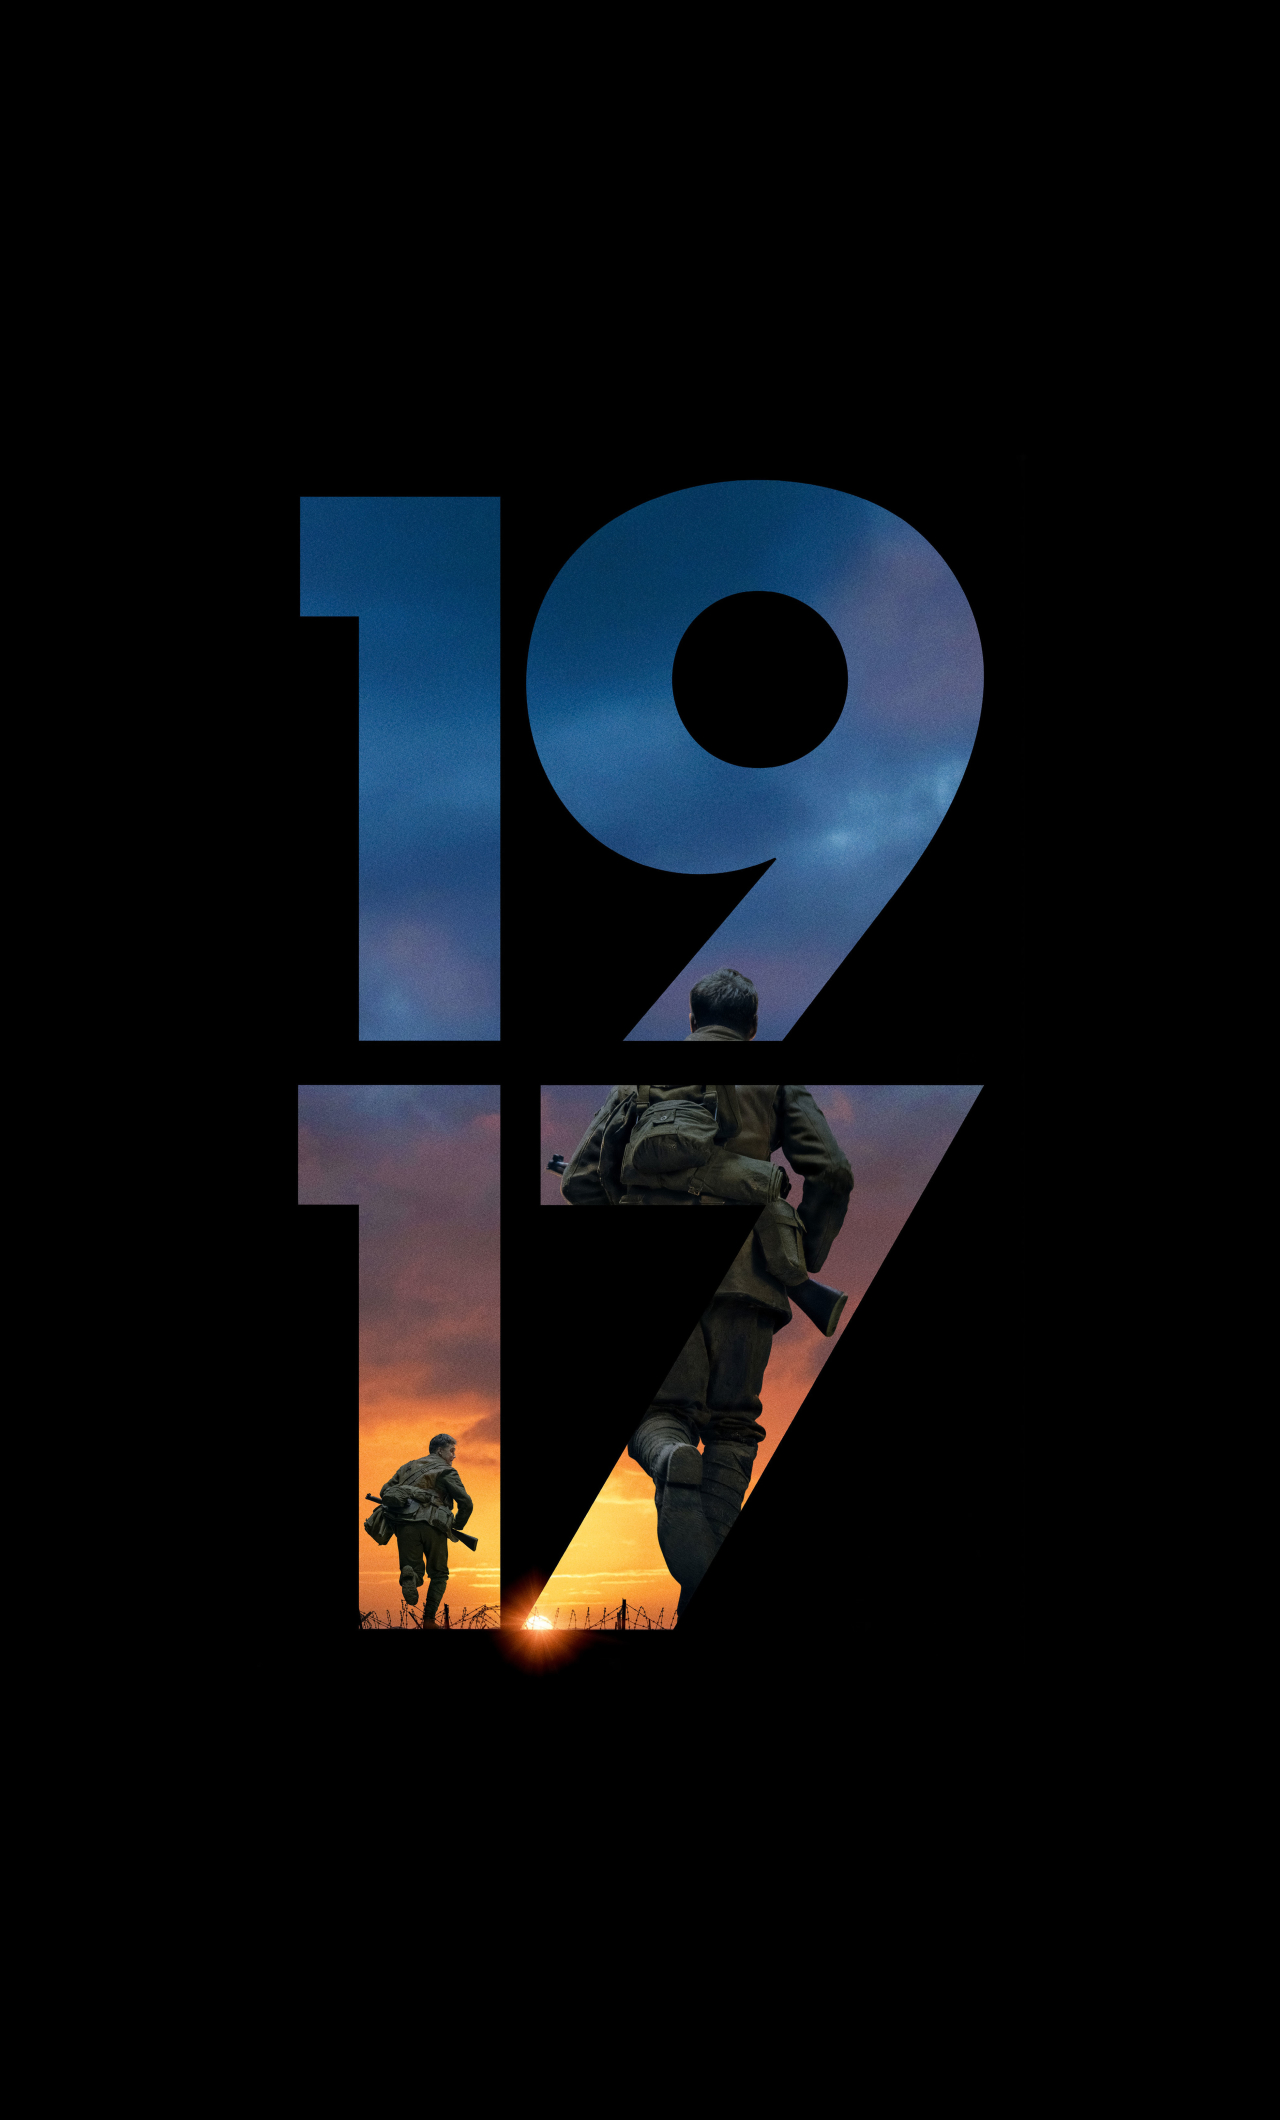 Image result for hd 1917 movie images